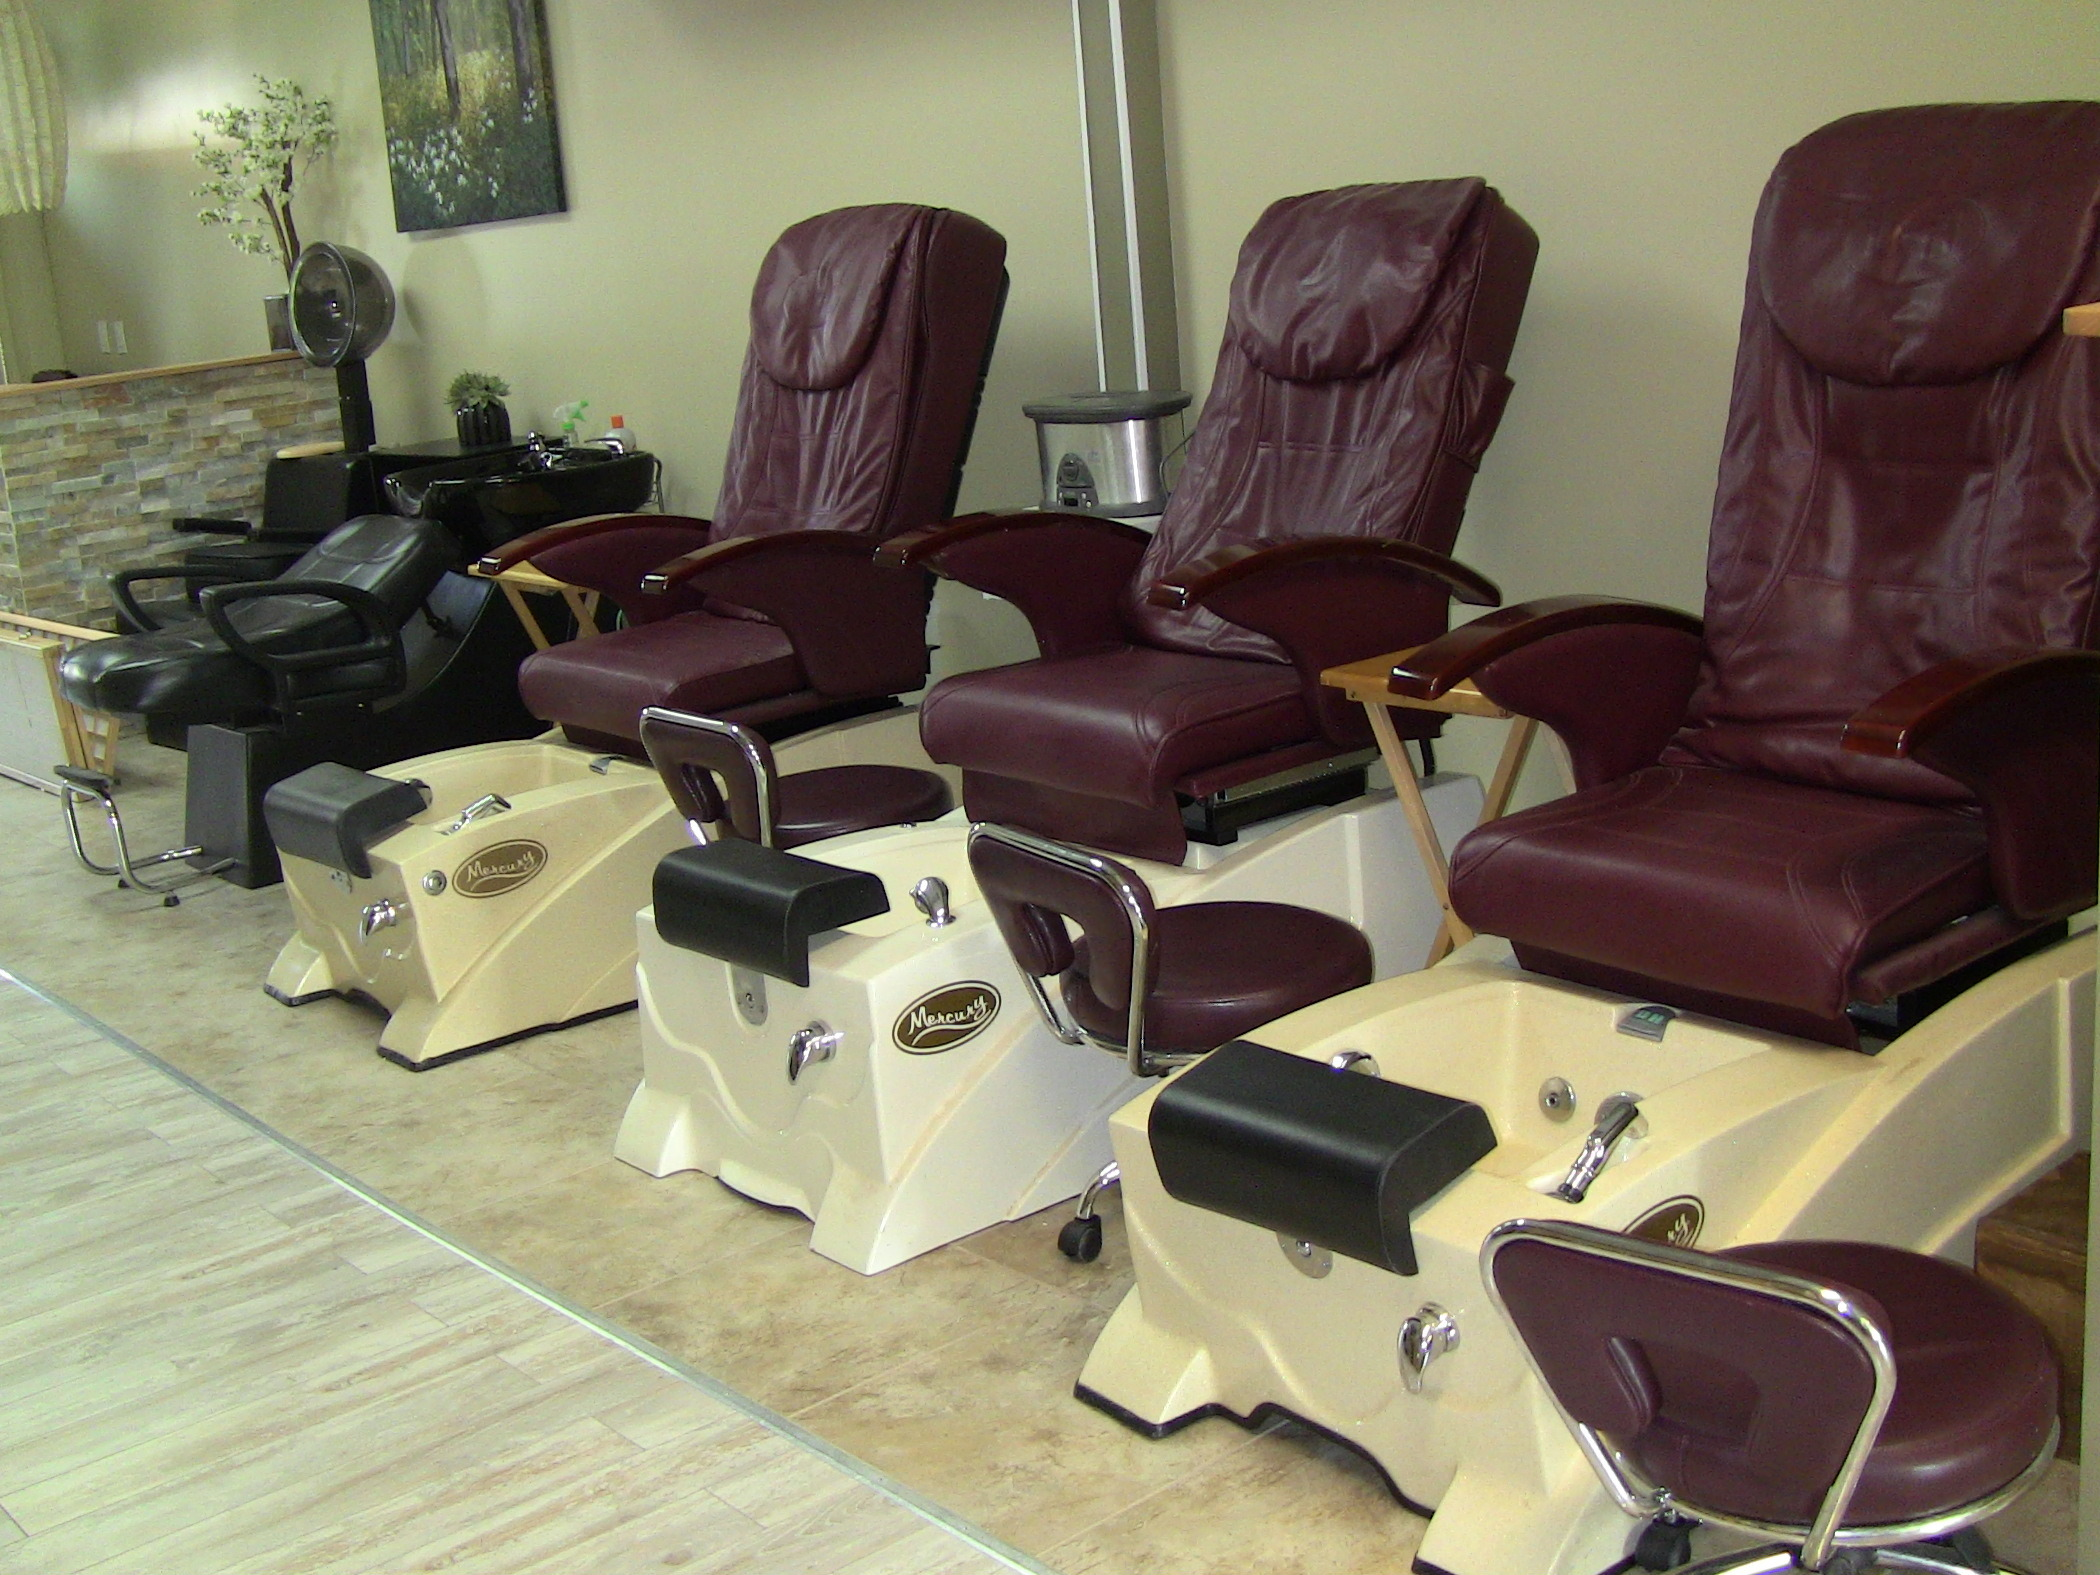 61916996dc89501cdd26_Able_Body_Spa_-_inside._Chairs.jpg